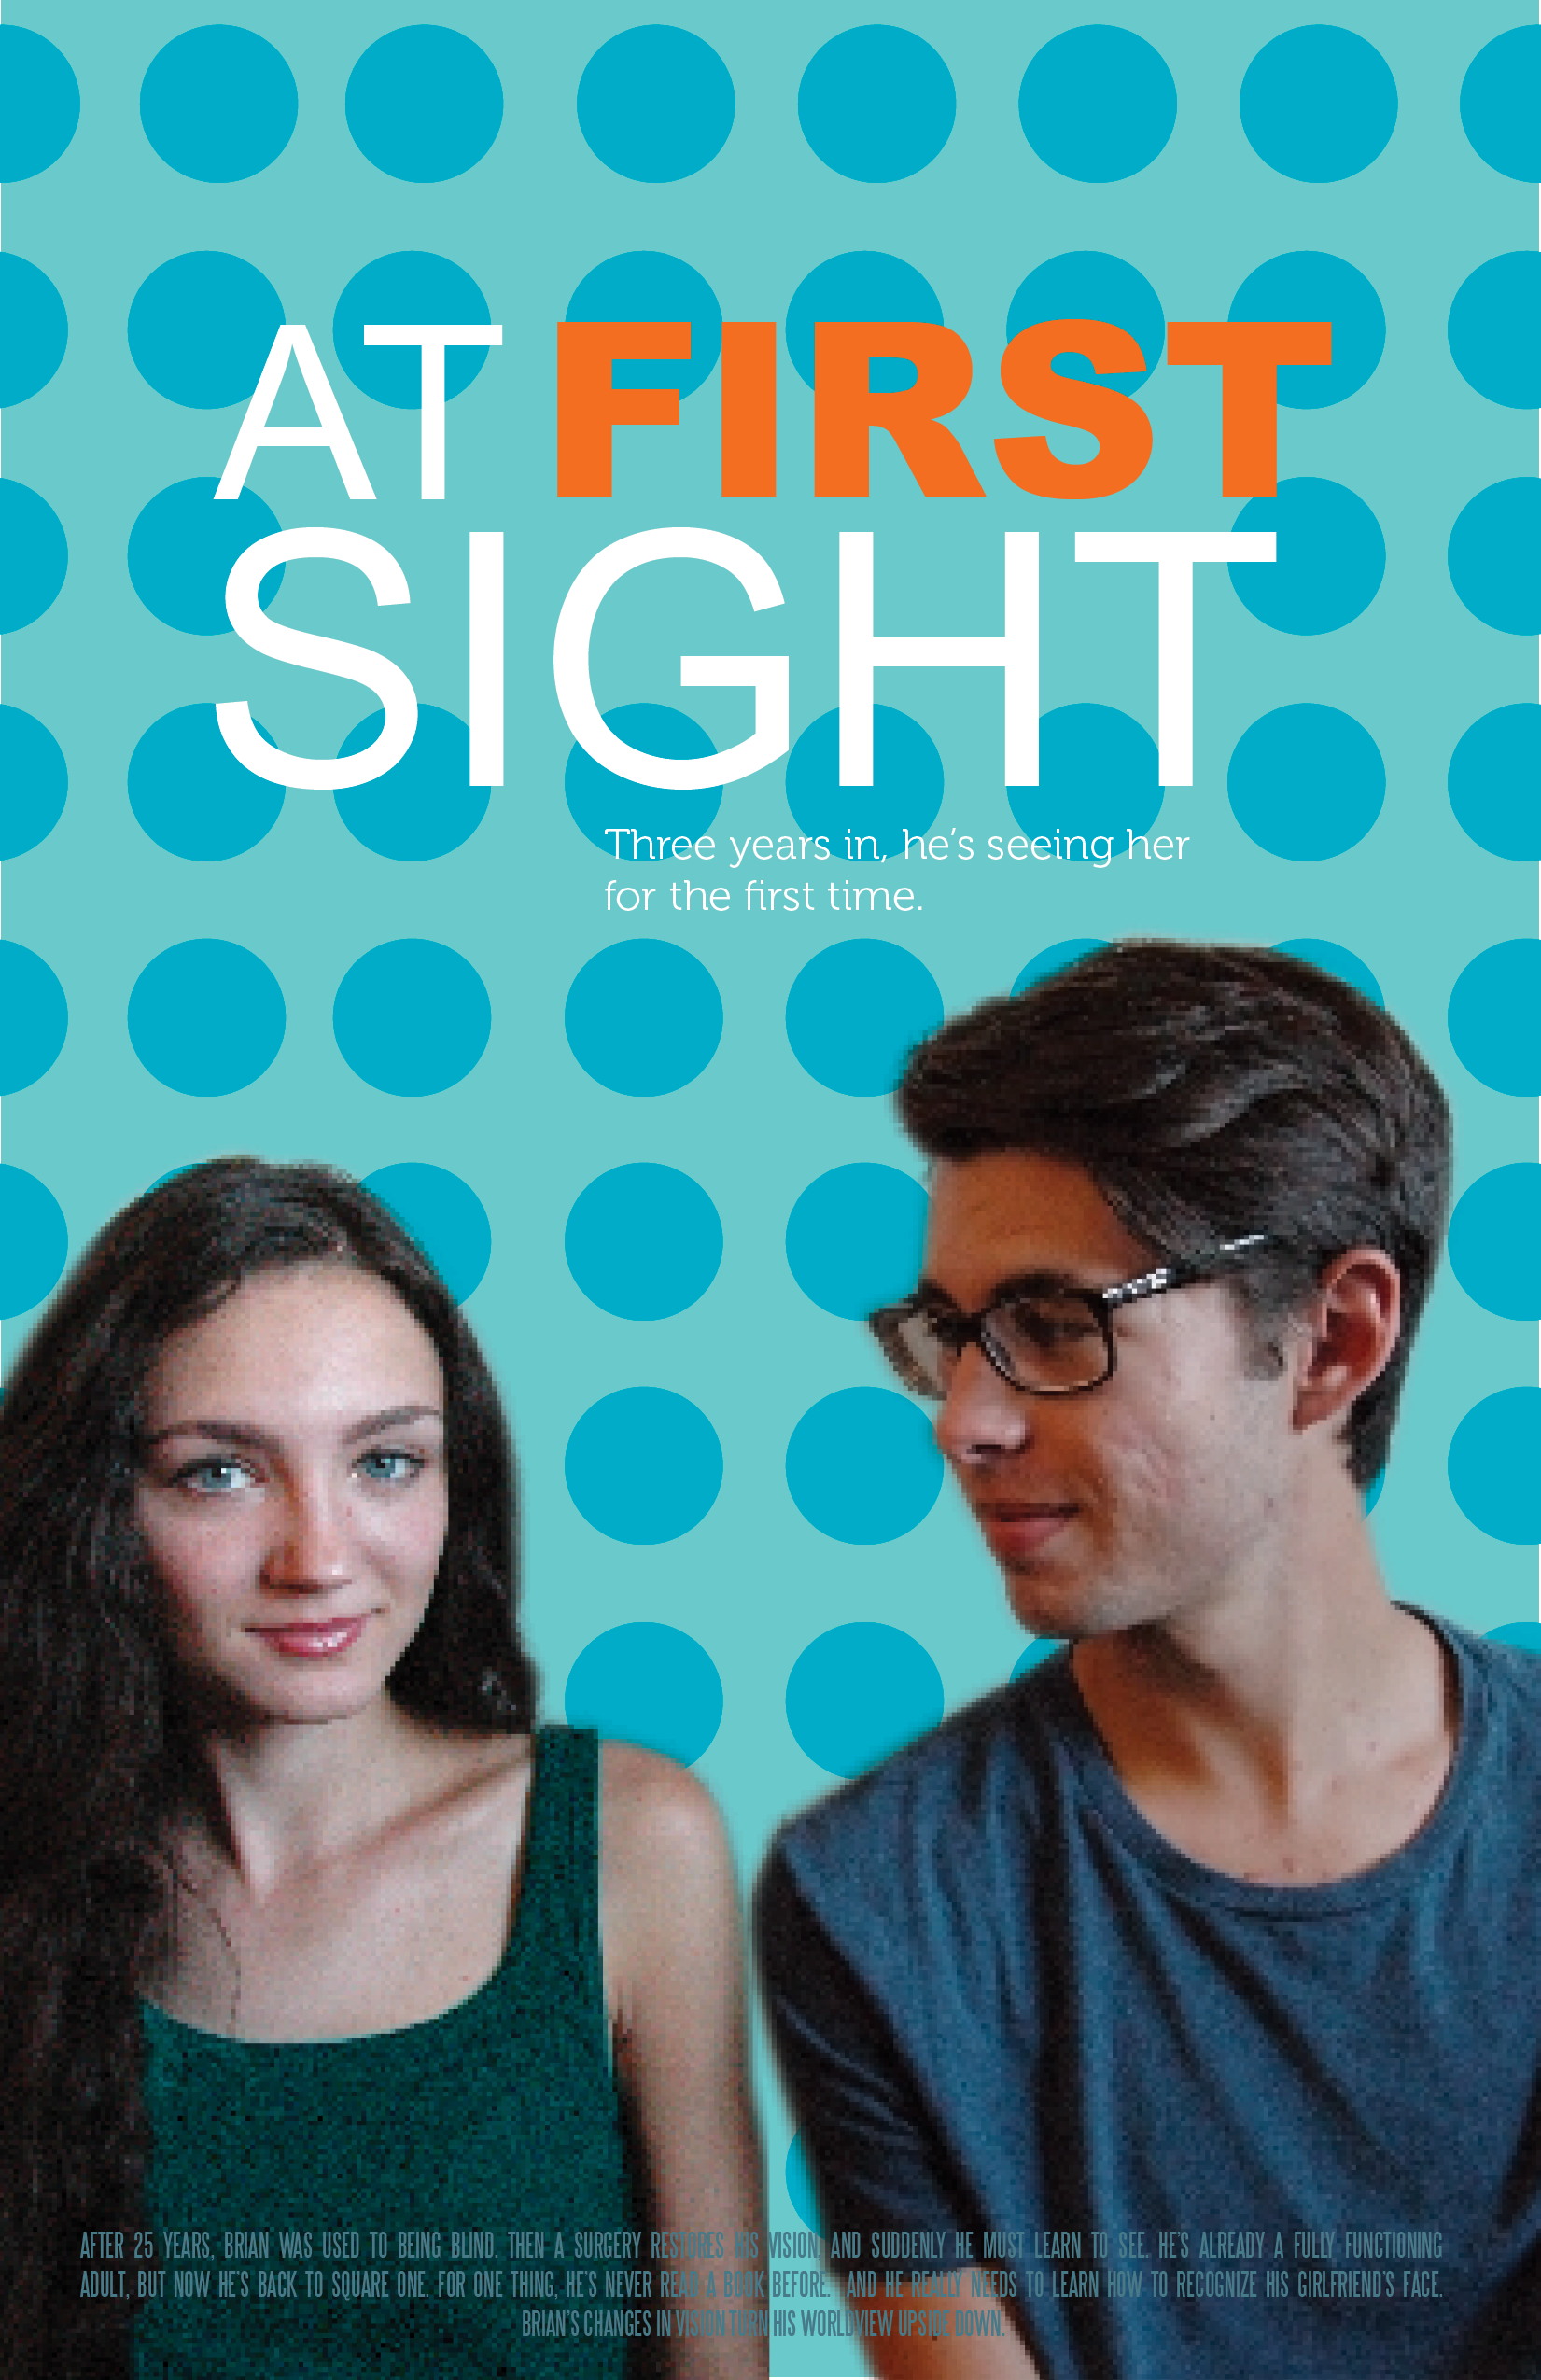 at first sight poster 4 final.png